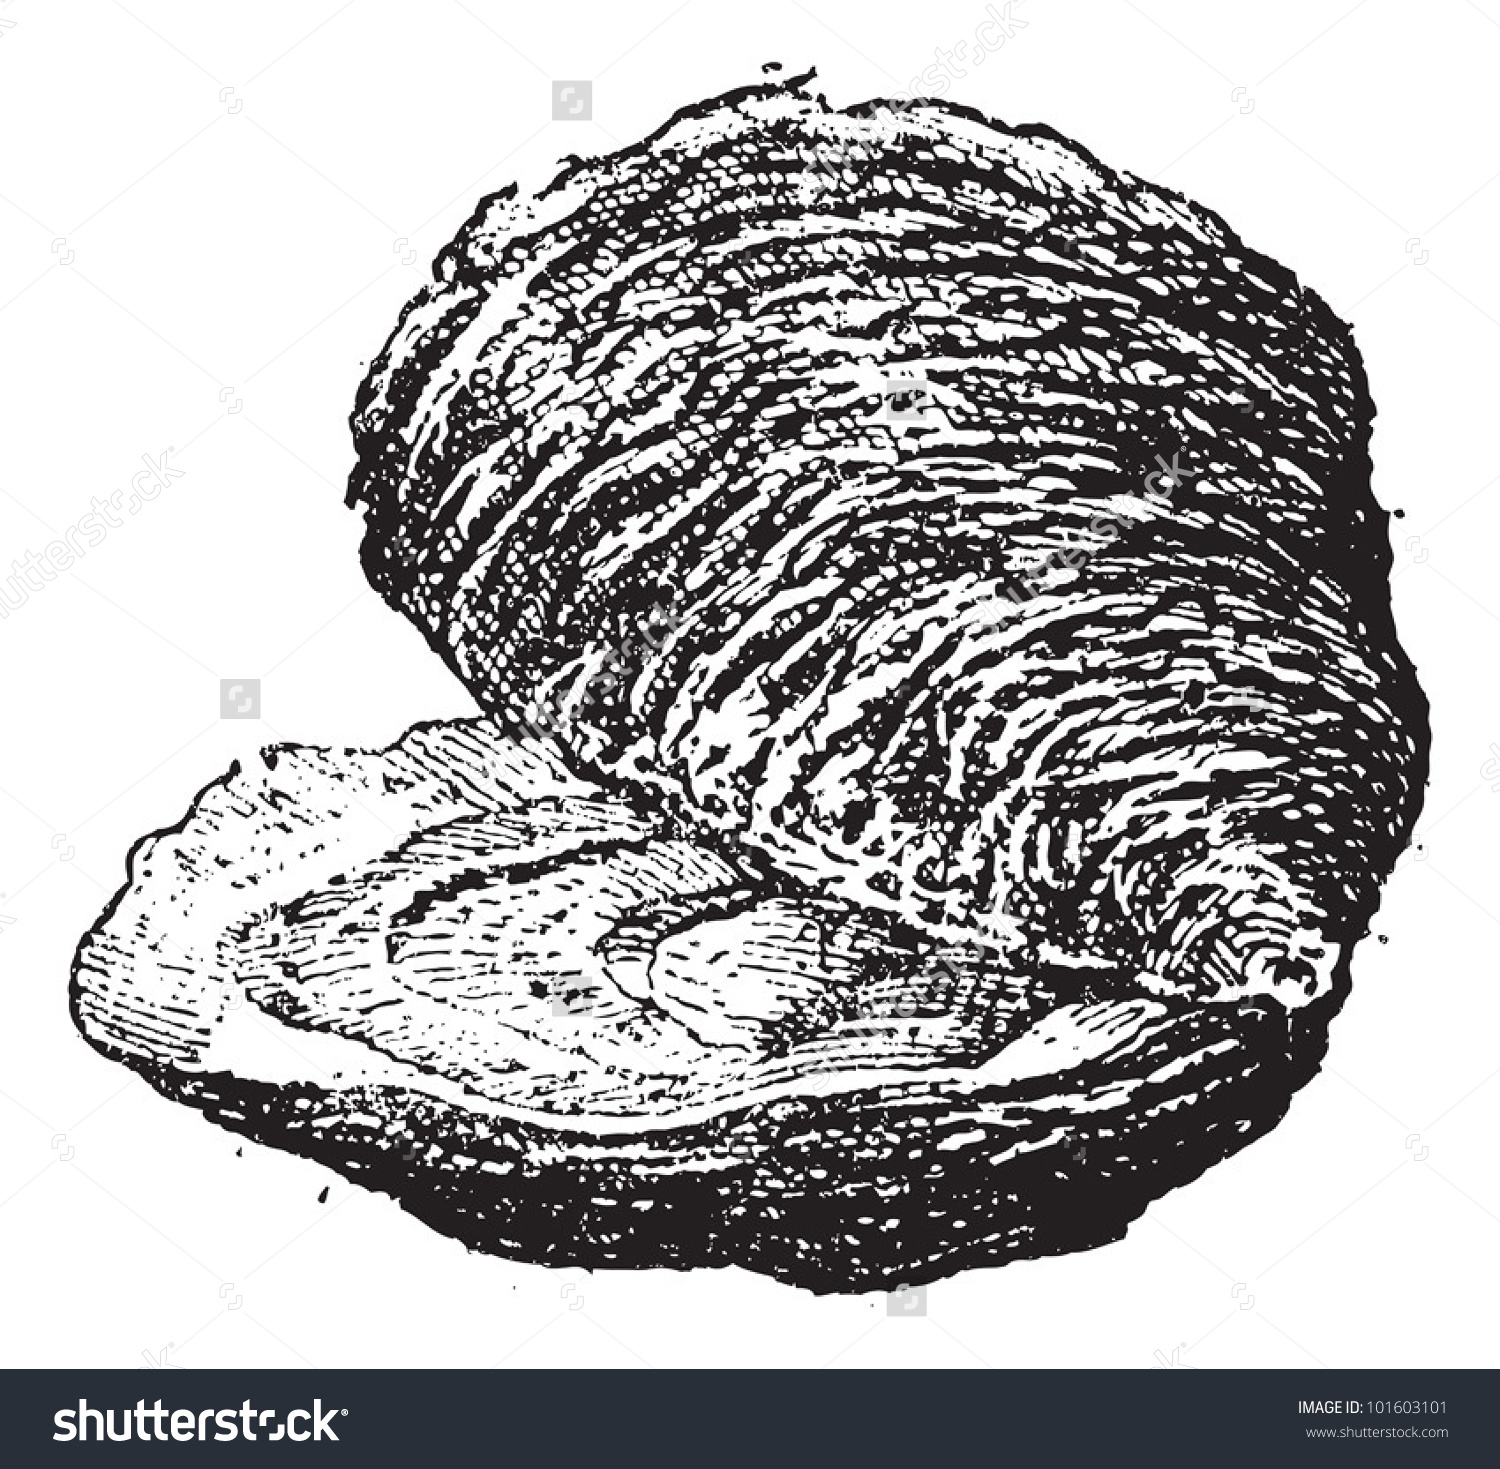 Oyster clipart bivalve. Mollusc panda free images graphic royalty free download